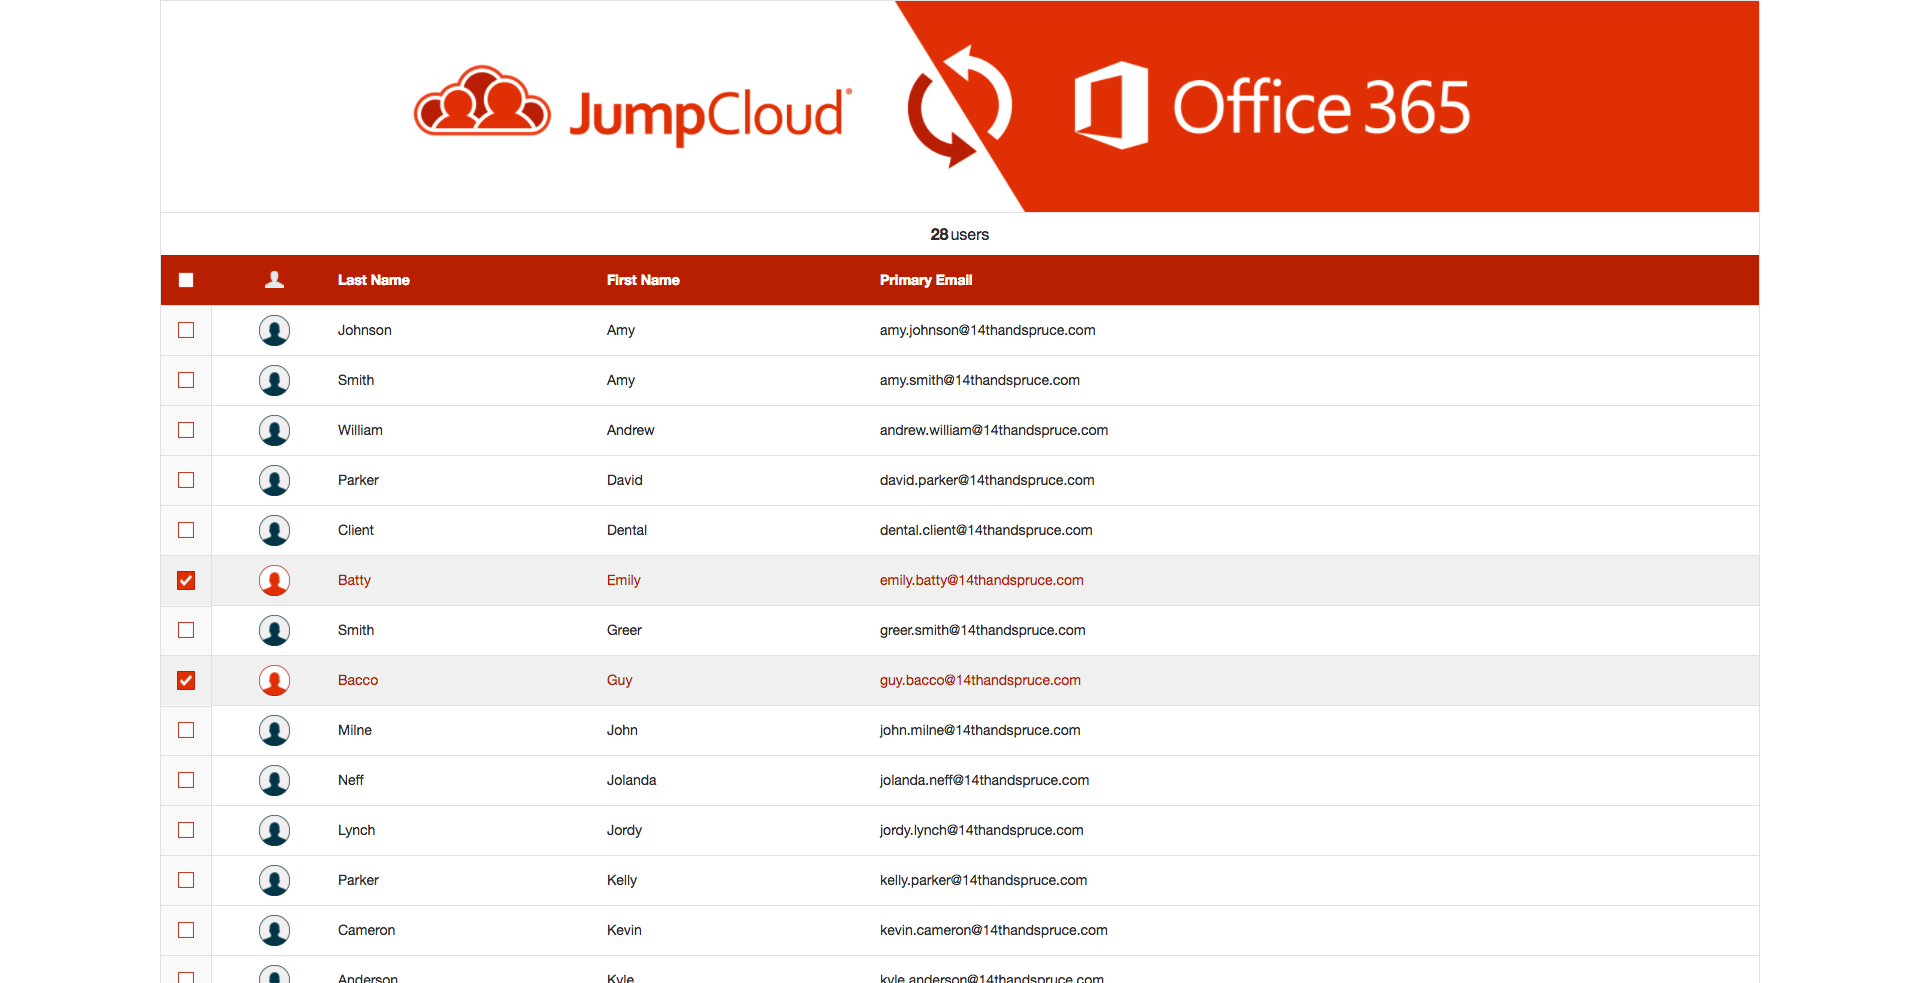 JumpCloud Directory Platform Software - Import user accounts from O365 with JumpCloud's Office 365 directory integration